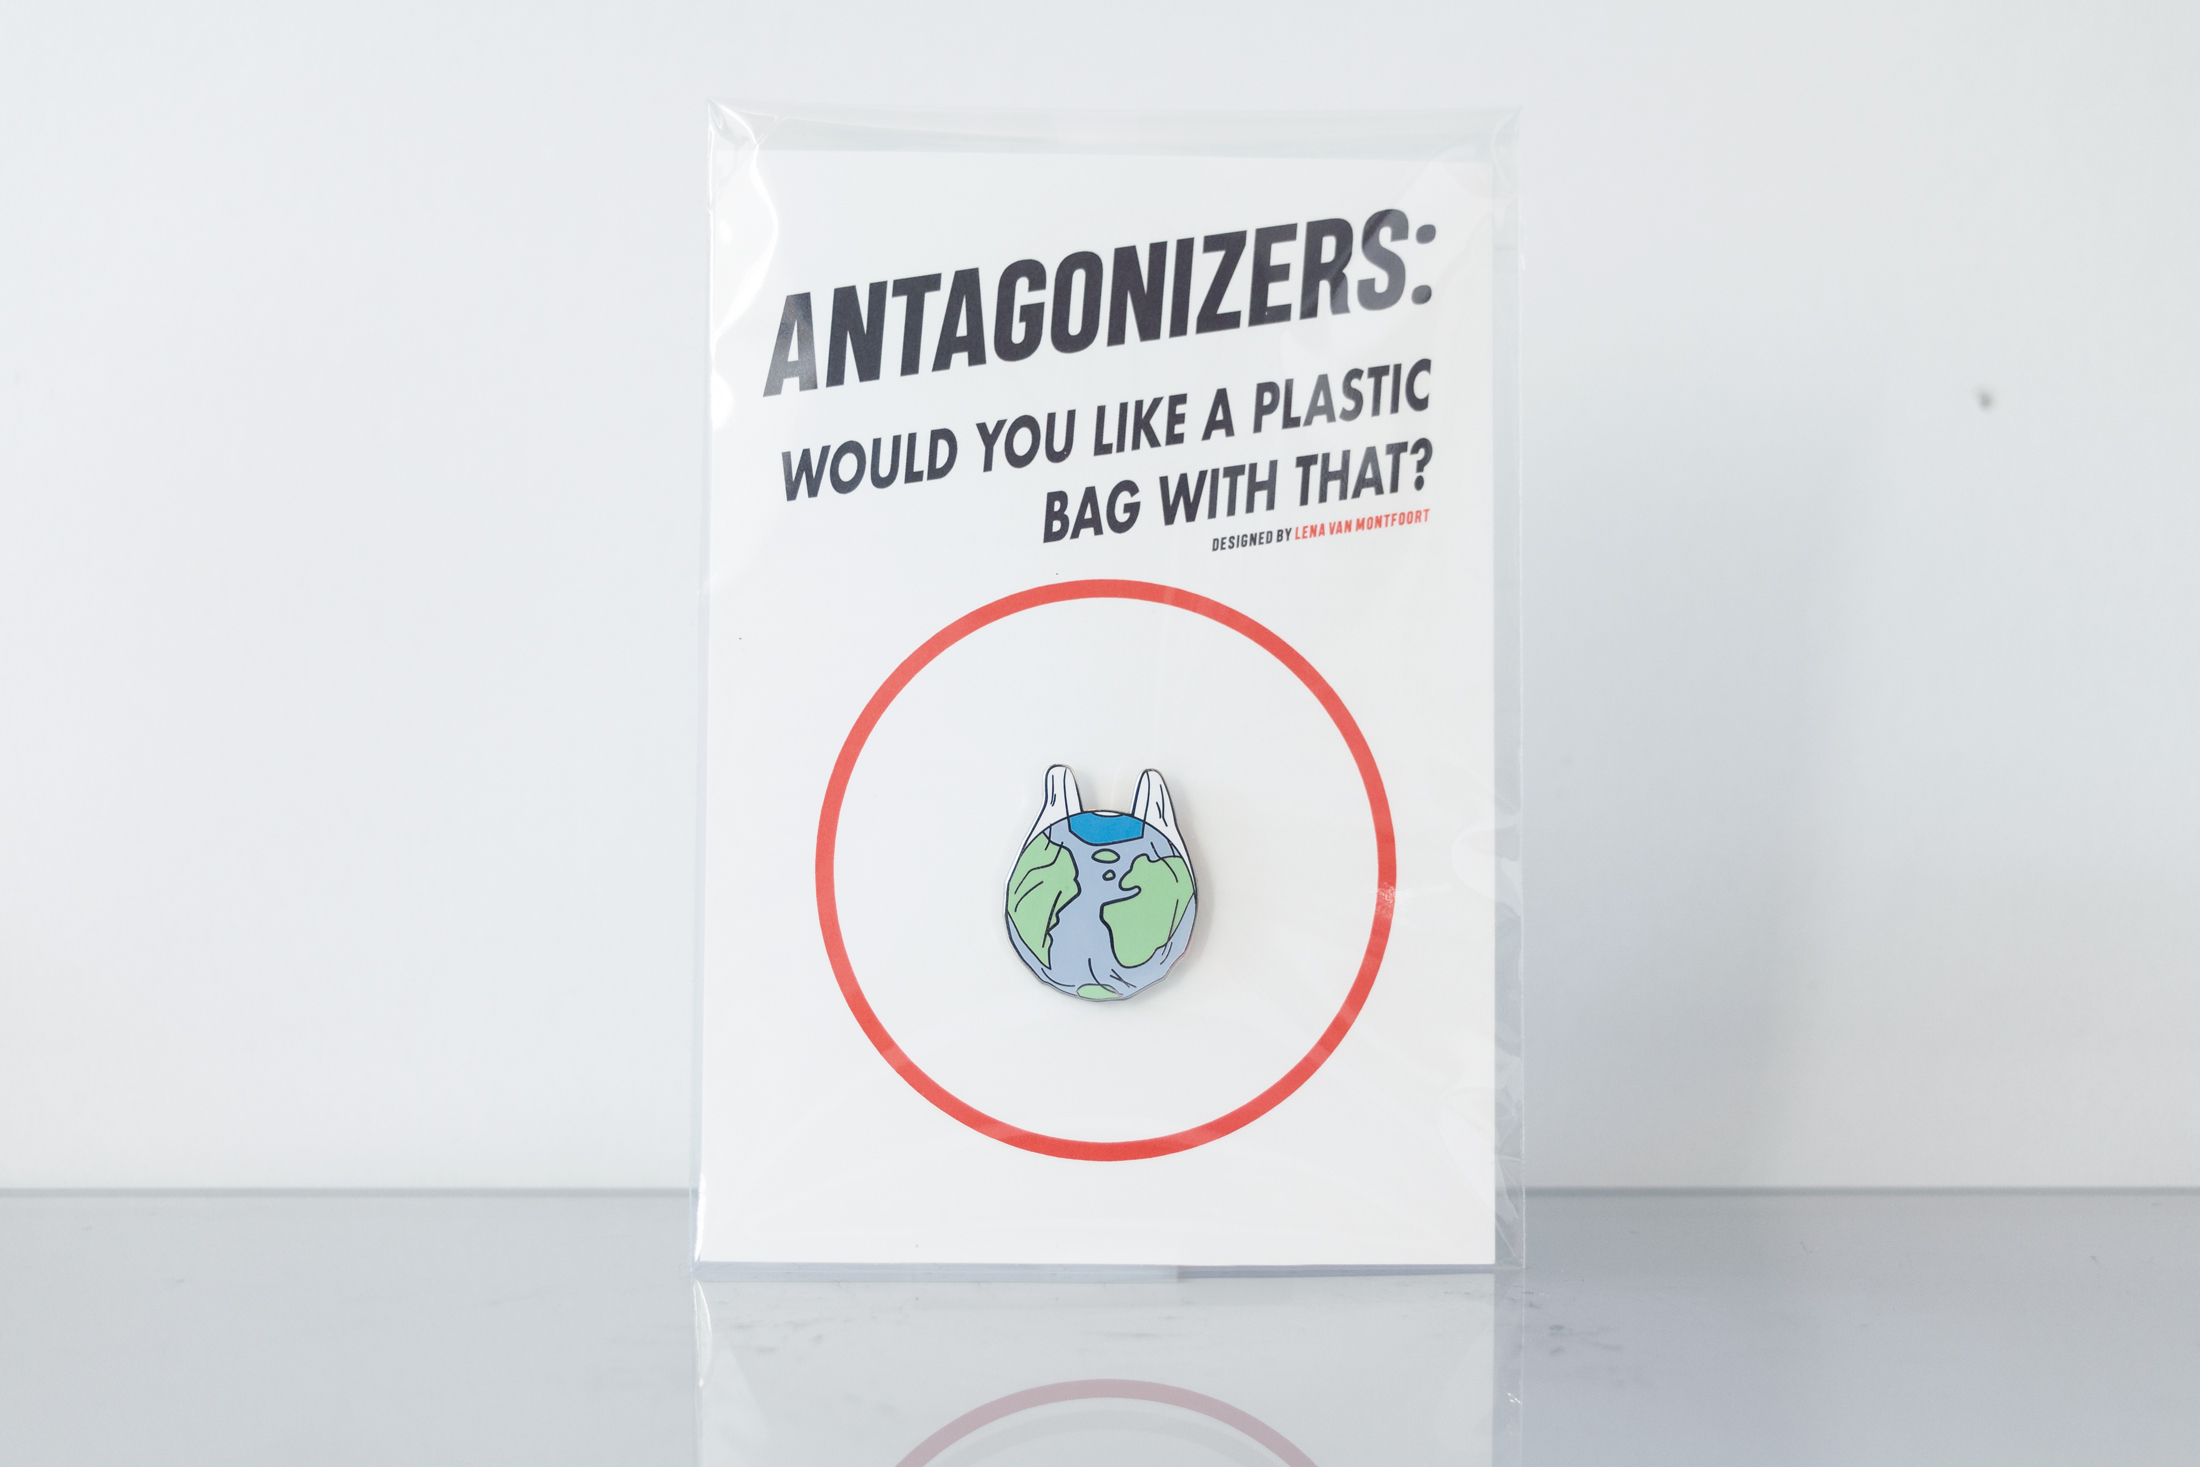 Antagonizers: Would you like a plastic bag with that?